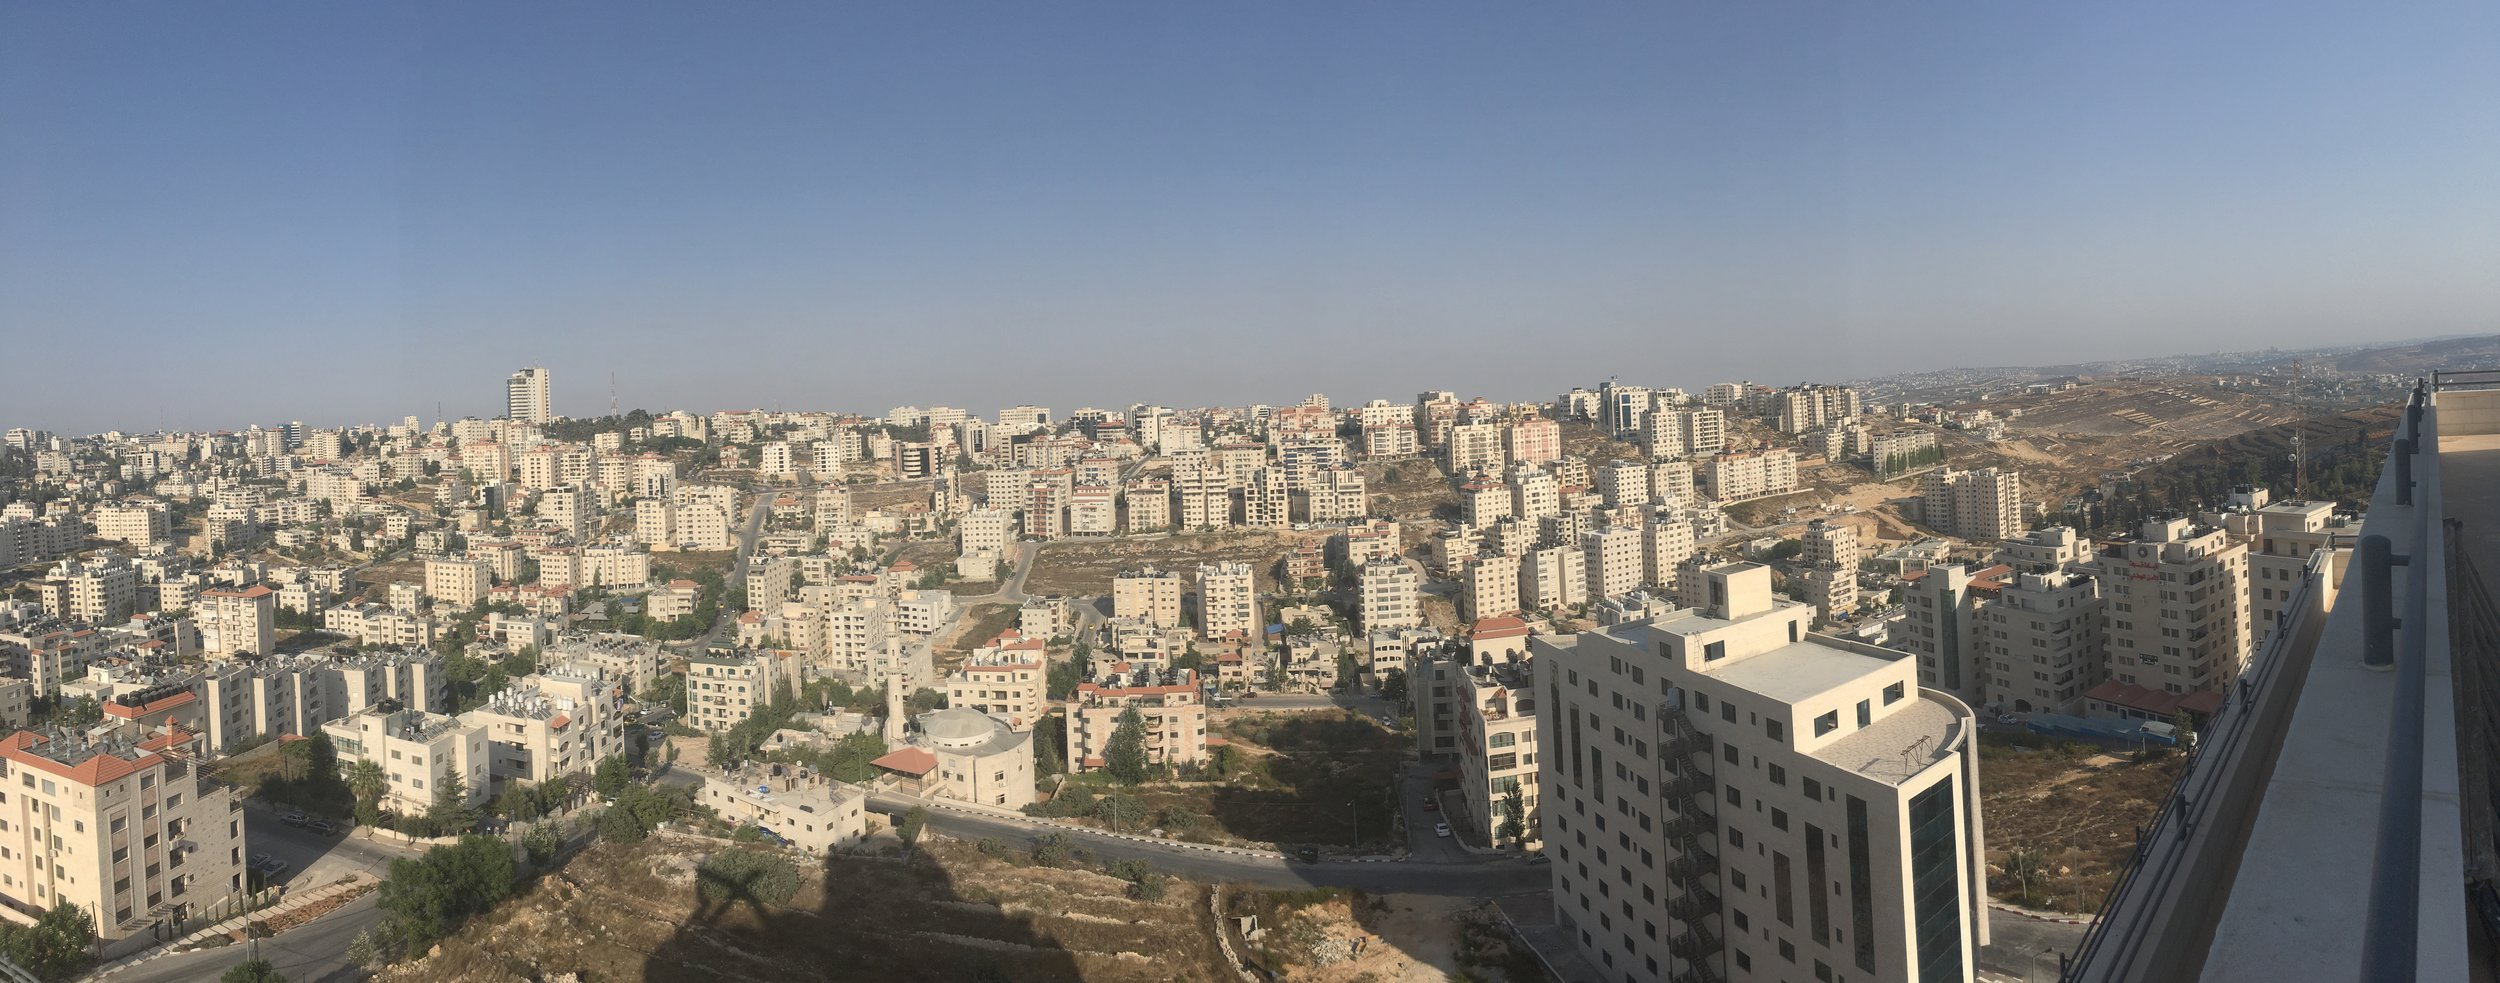 Panorama of Ramallah from one of its tallest buildings. Access granted simply by asking the security guard at the entrance, who happily agreed and escorted us to the roof top for 5 minutes. No bakshish. This is Ramallah.